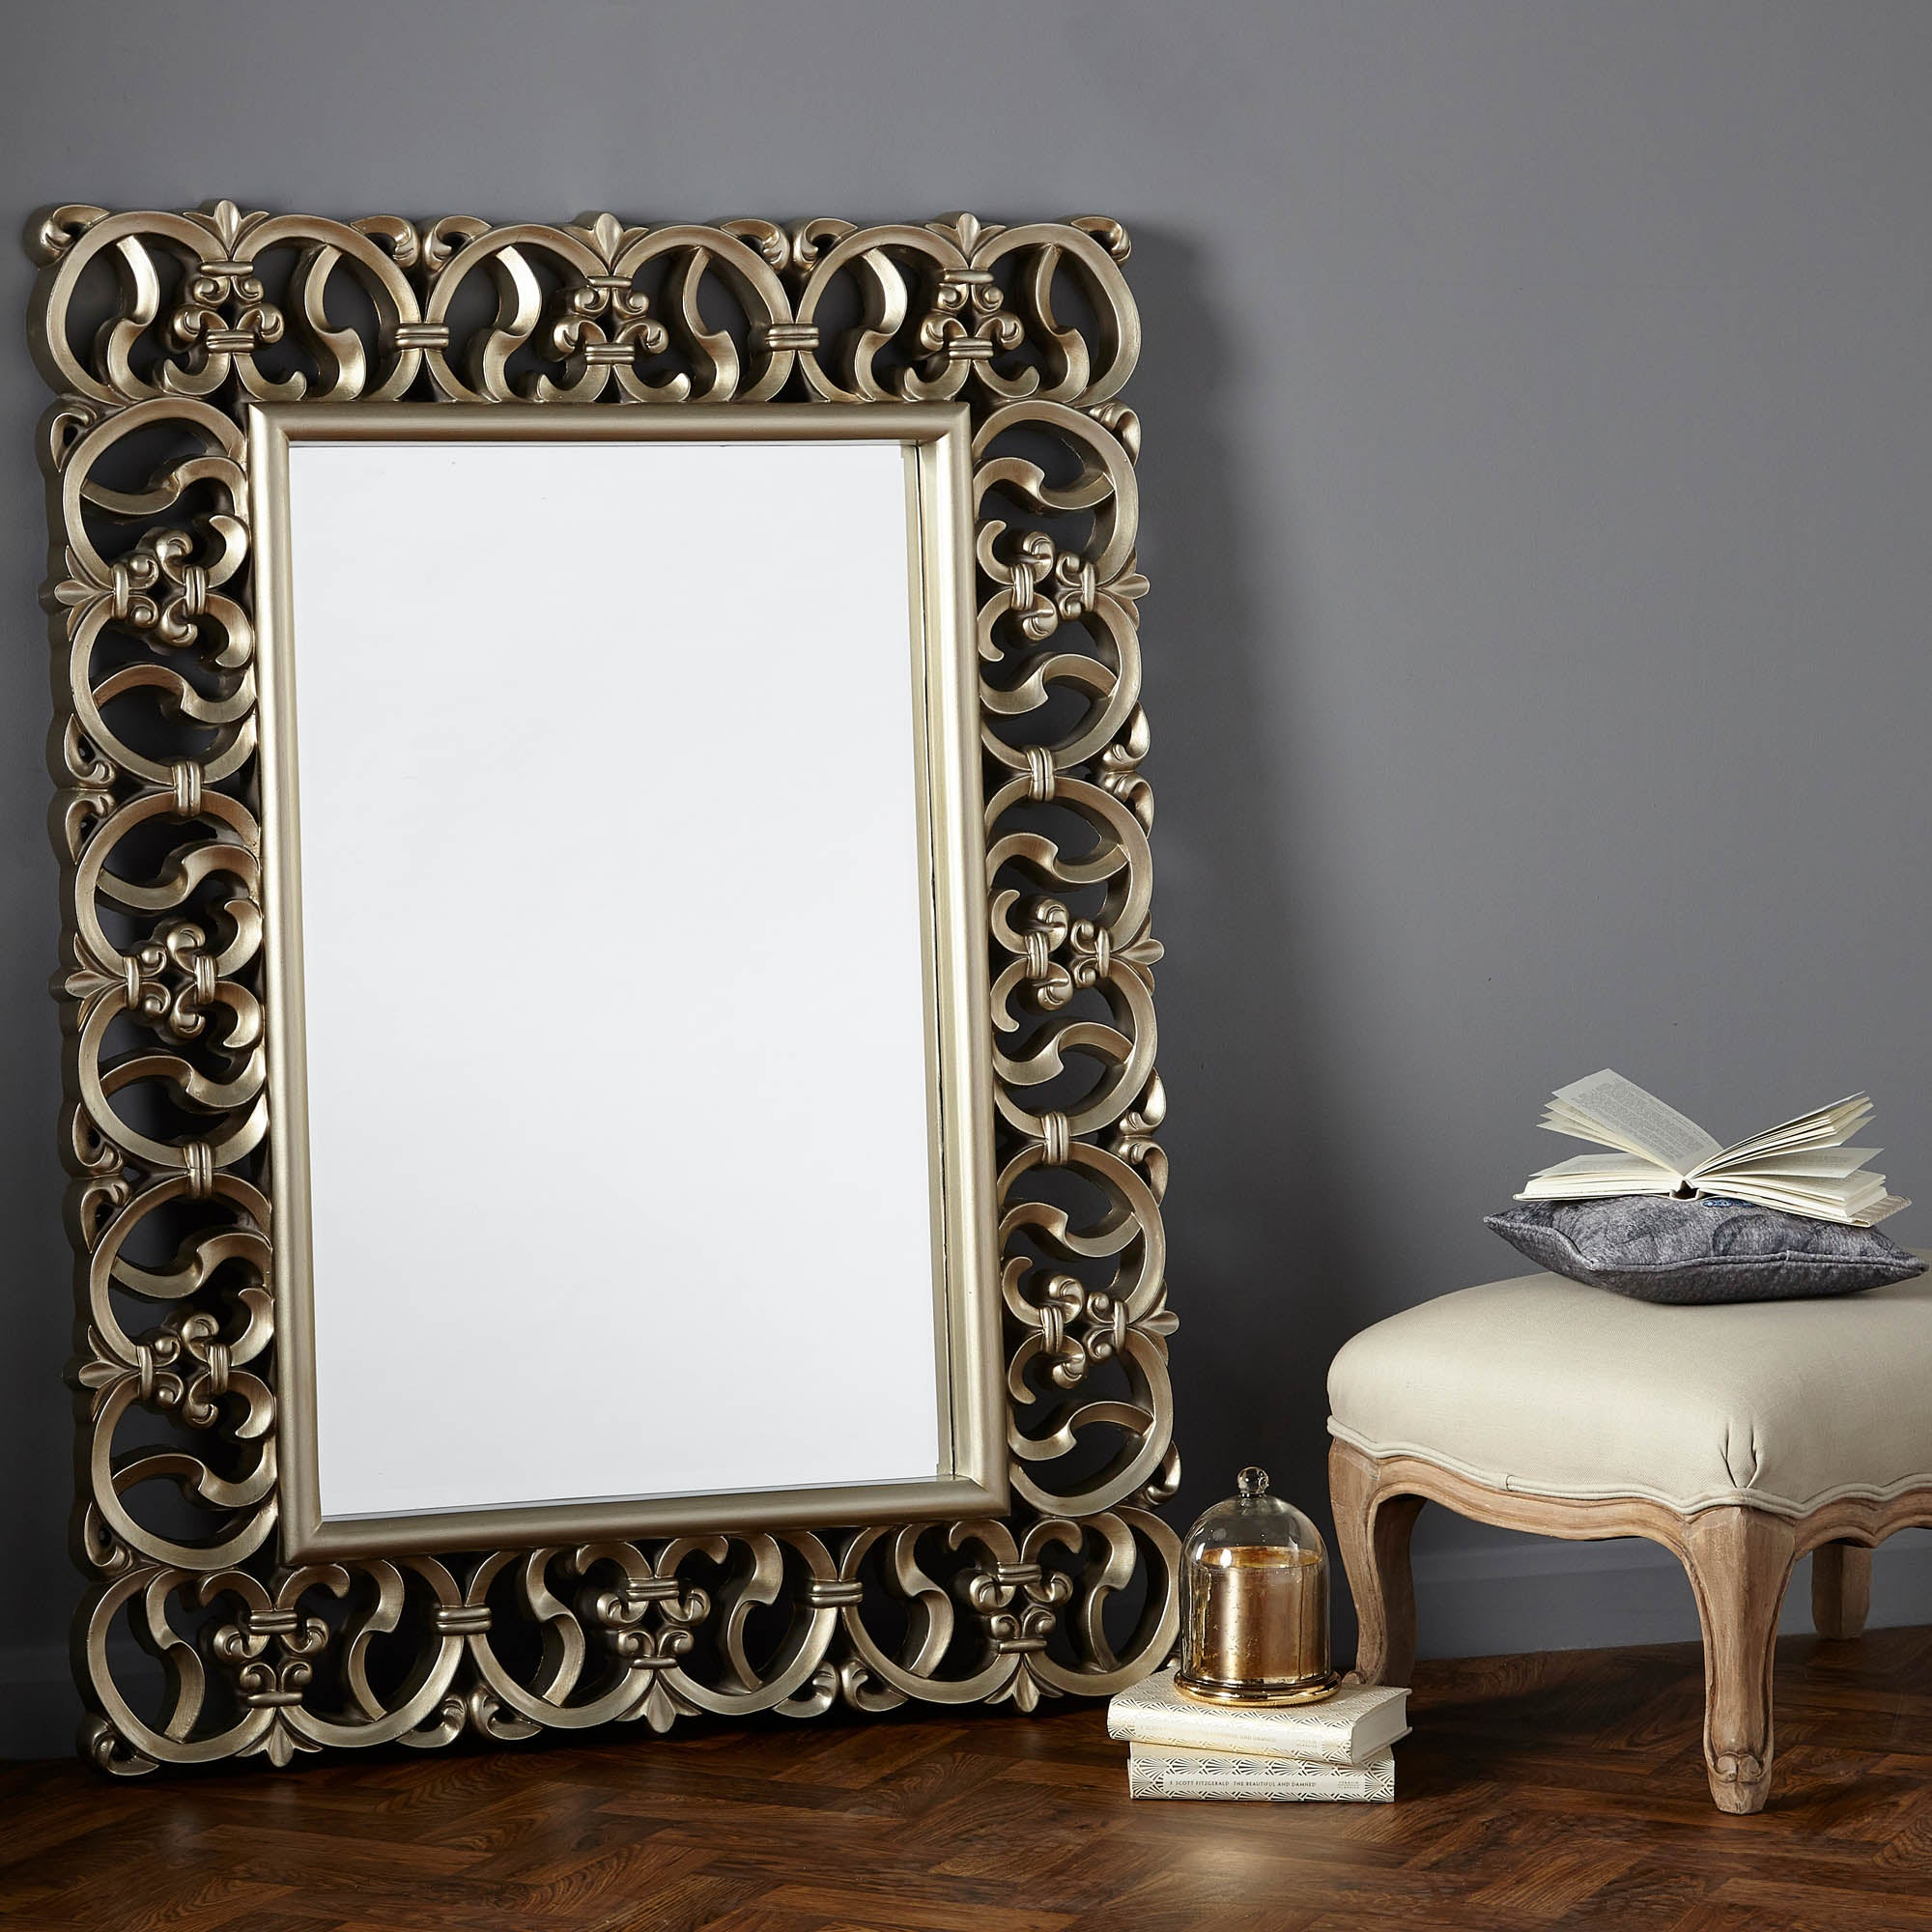 Ornate Highlife Framed Mirror